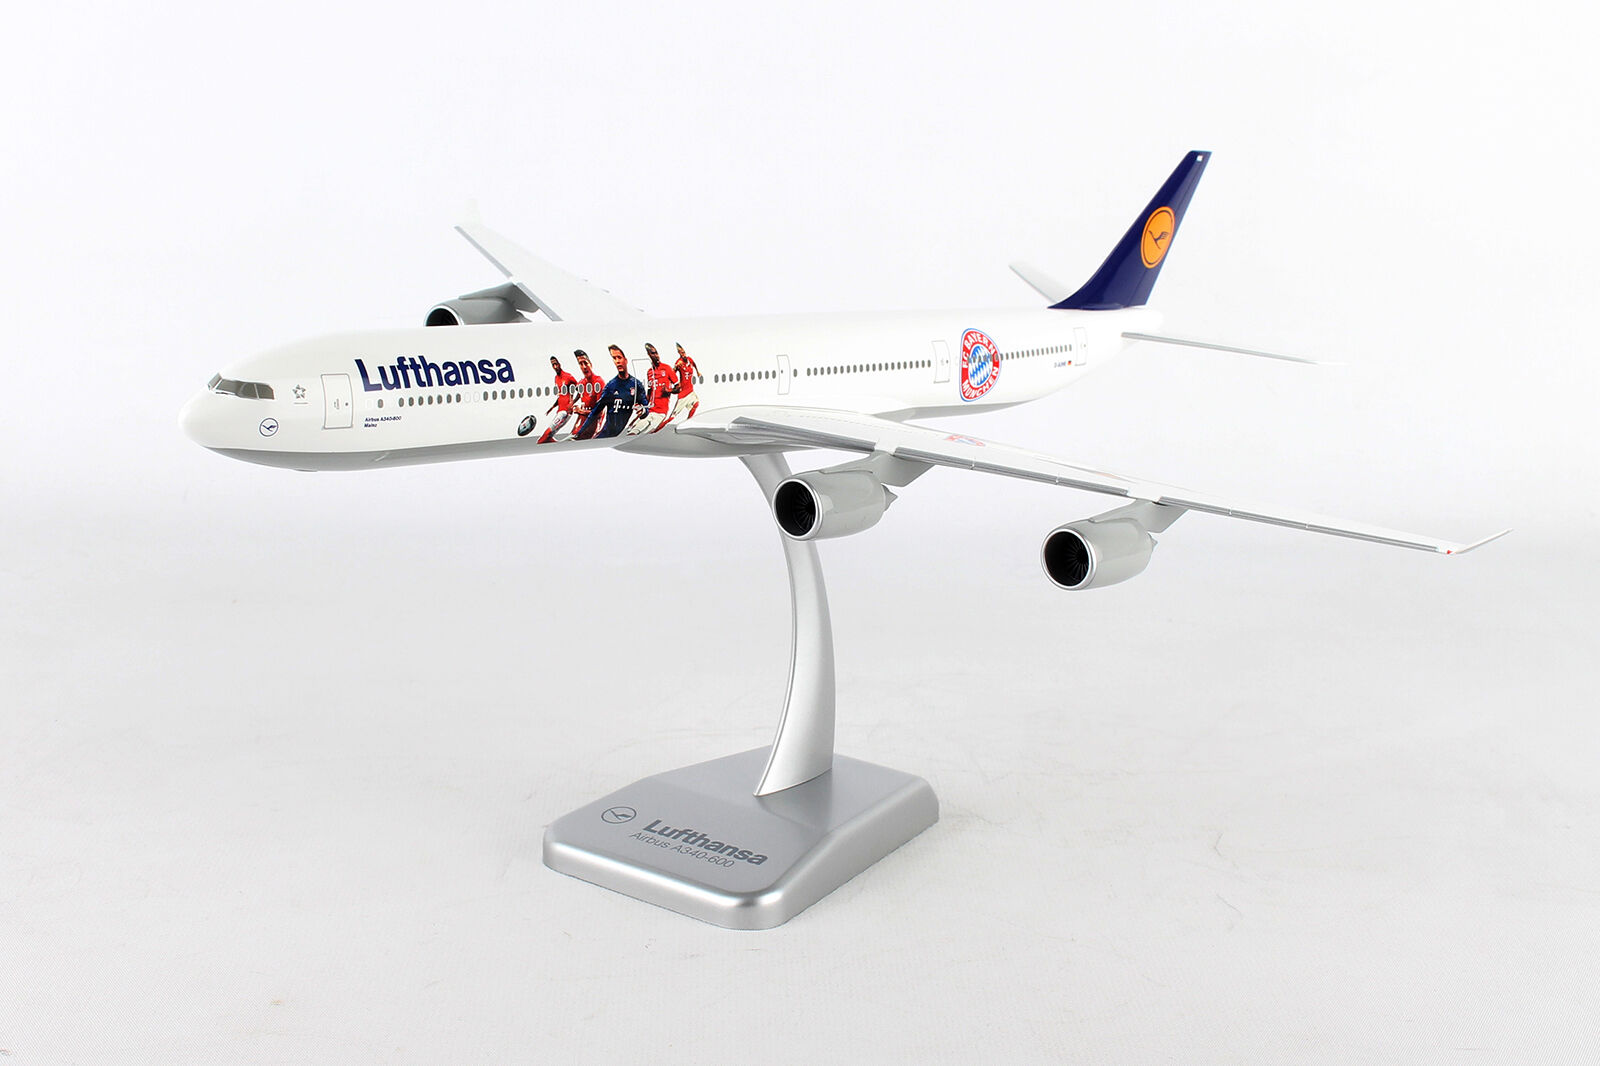 Limox Wings Lufthansa New Livery Airbus A340-600 1:200  LW200DLH005